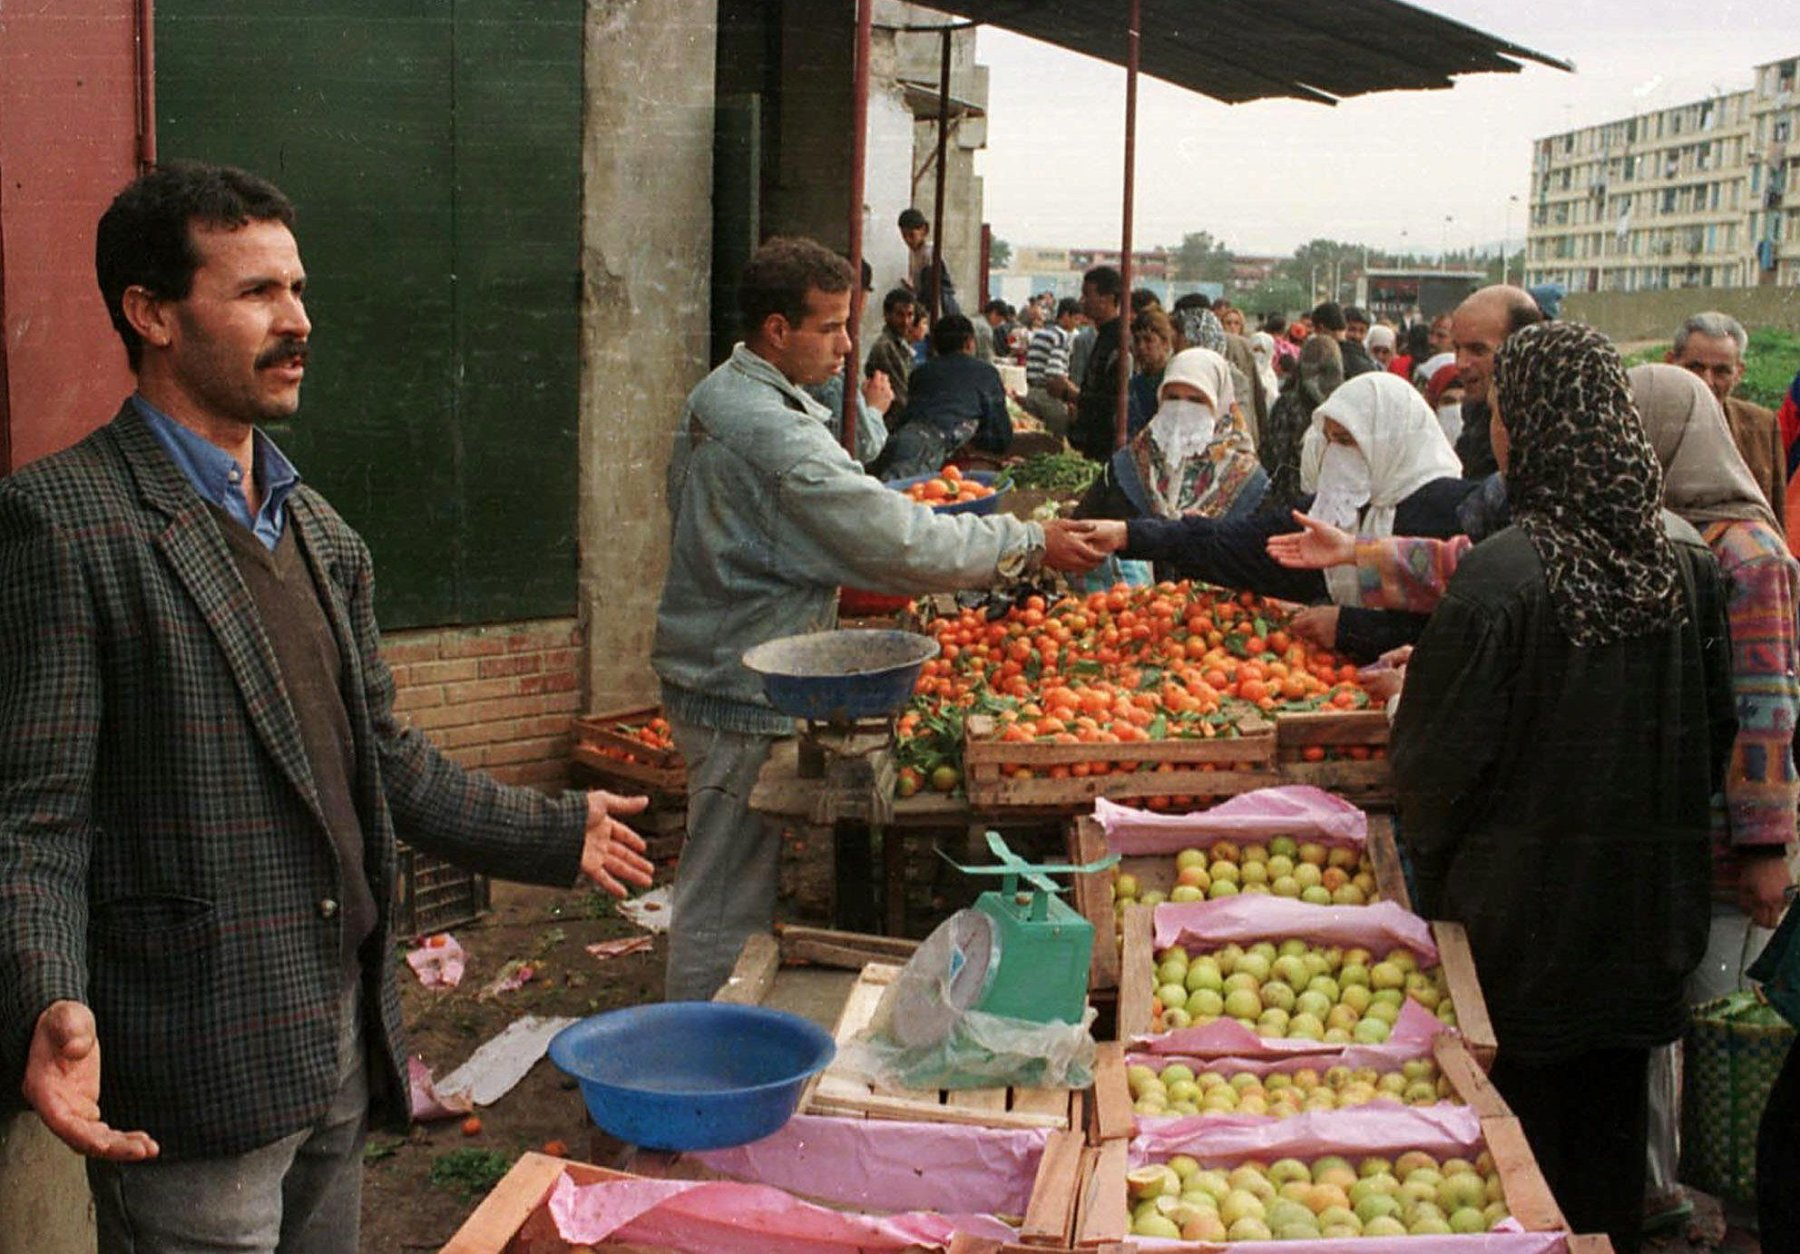 Algerians of the Badjarah district of Algiers go shopping in preparation for the holy month of Ramadan, Tuesday Dec. 30, 1997.  Road-side attackers and village raiders wielding knives and guns killed 58 people in Algeria in recent days according to witnesses and newspaper reports Tuesday. (AP PHOTO)